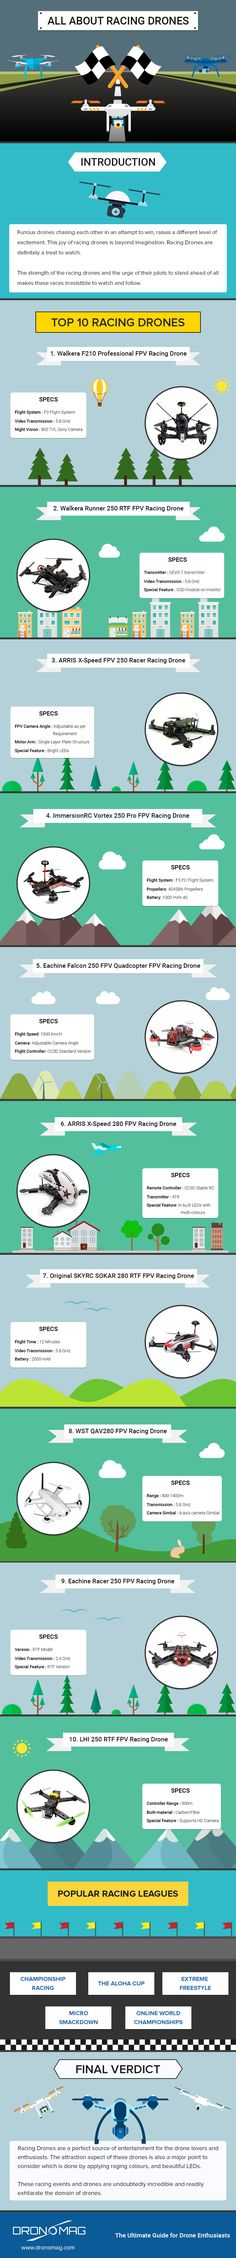 All About Racing Drone #Infographic #Drone